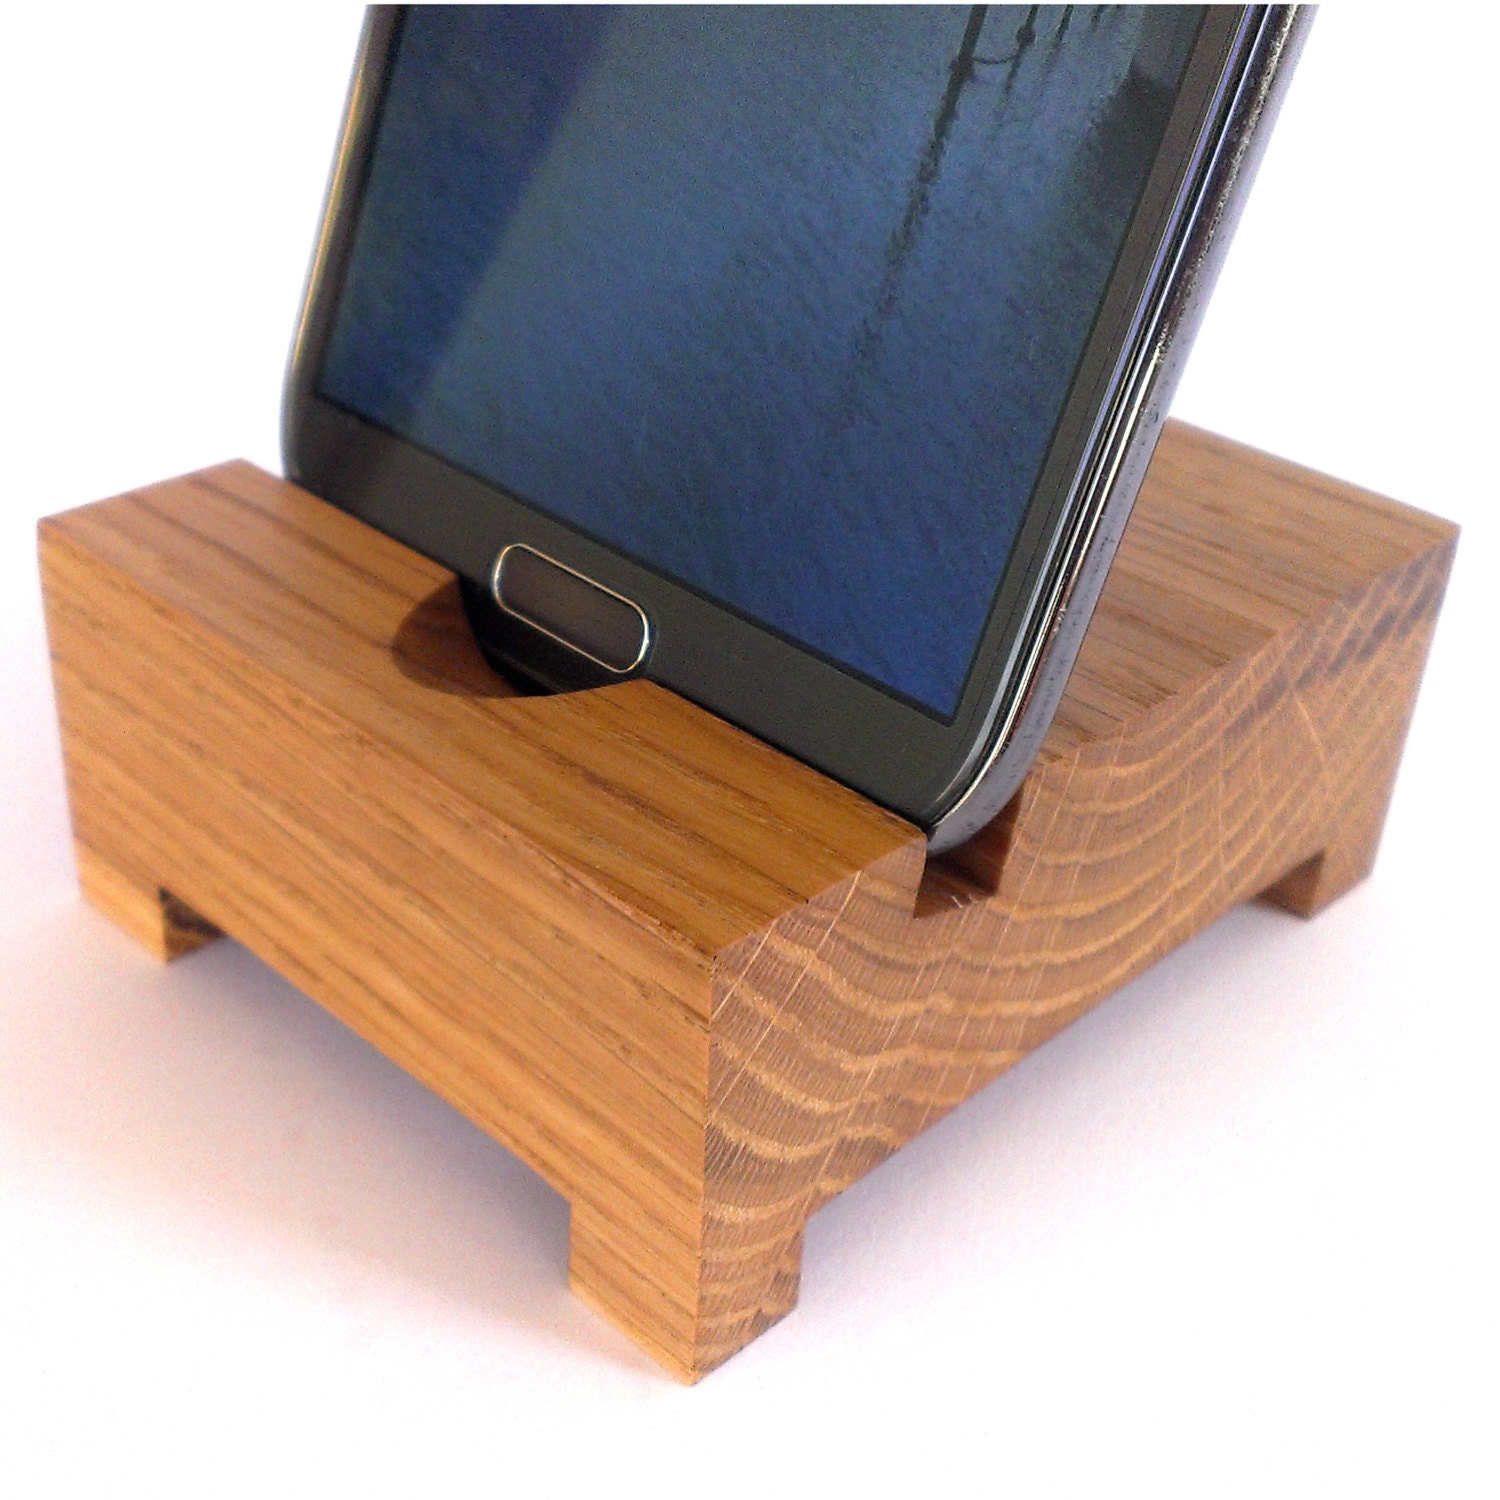 Wood iphone galaxy smart phone desk stand holder by